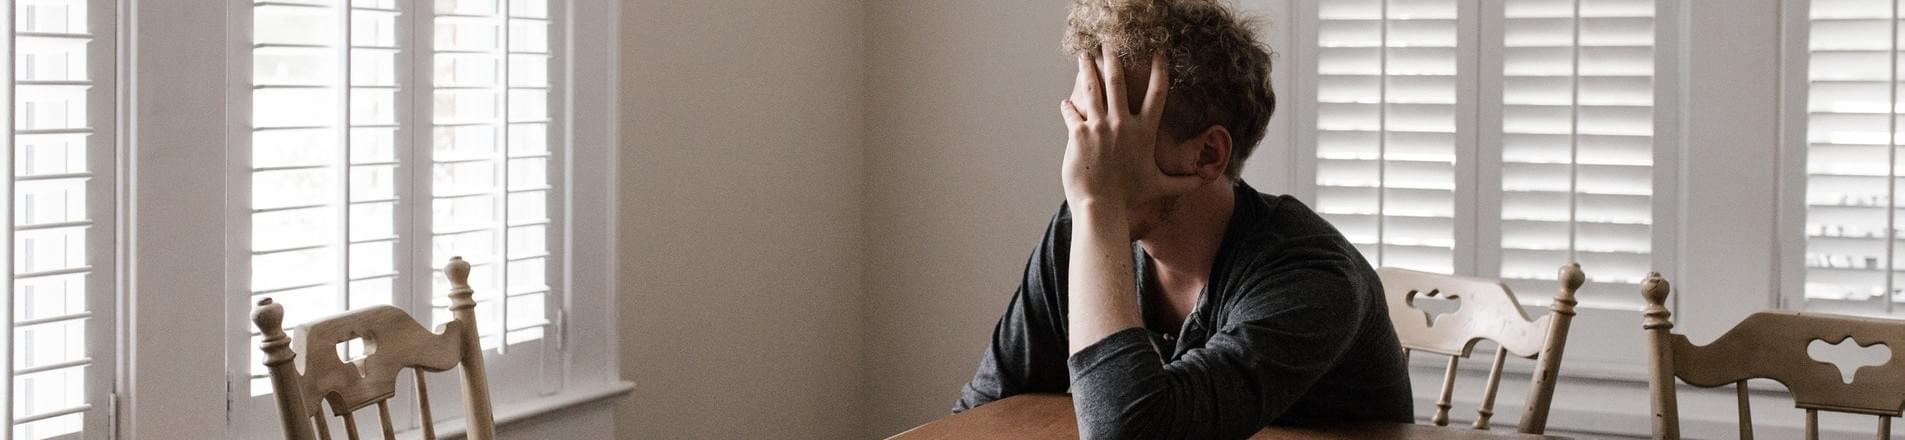 Survey reveals nearly one in three people regularly stressed